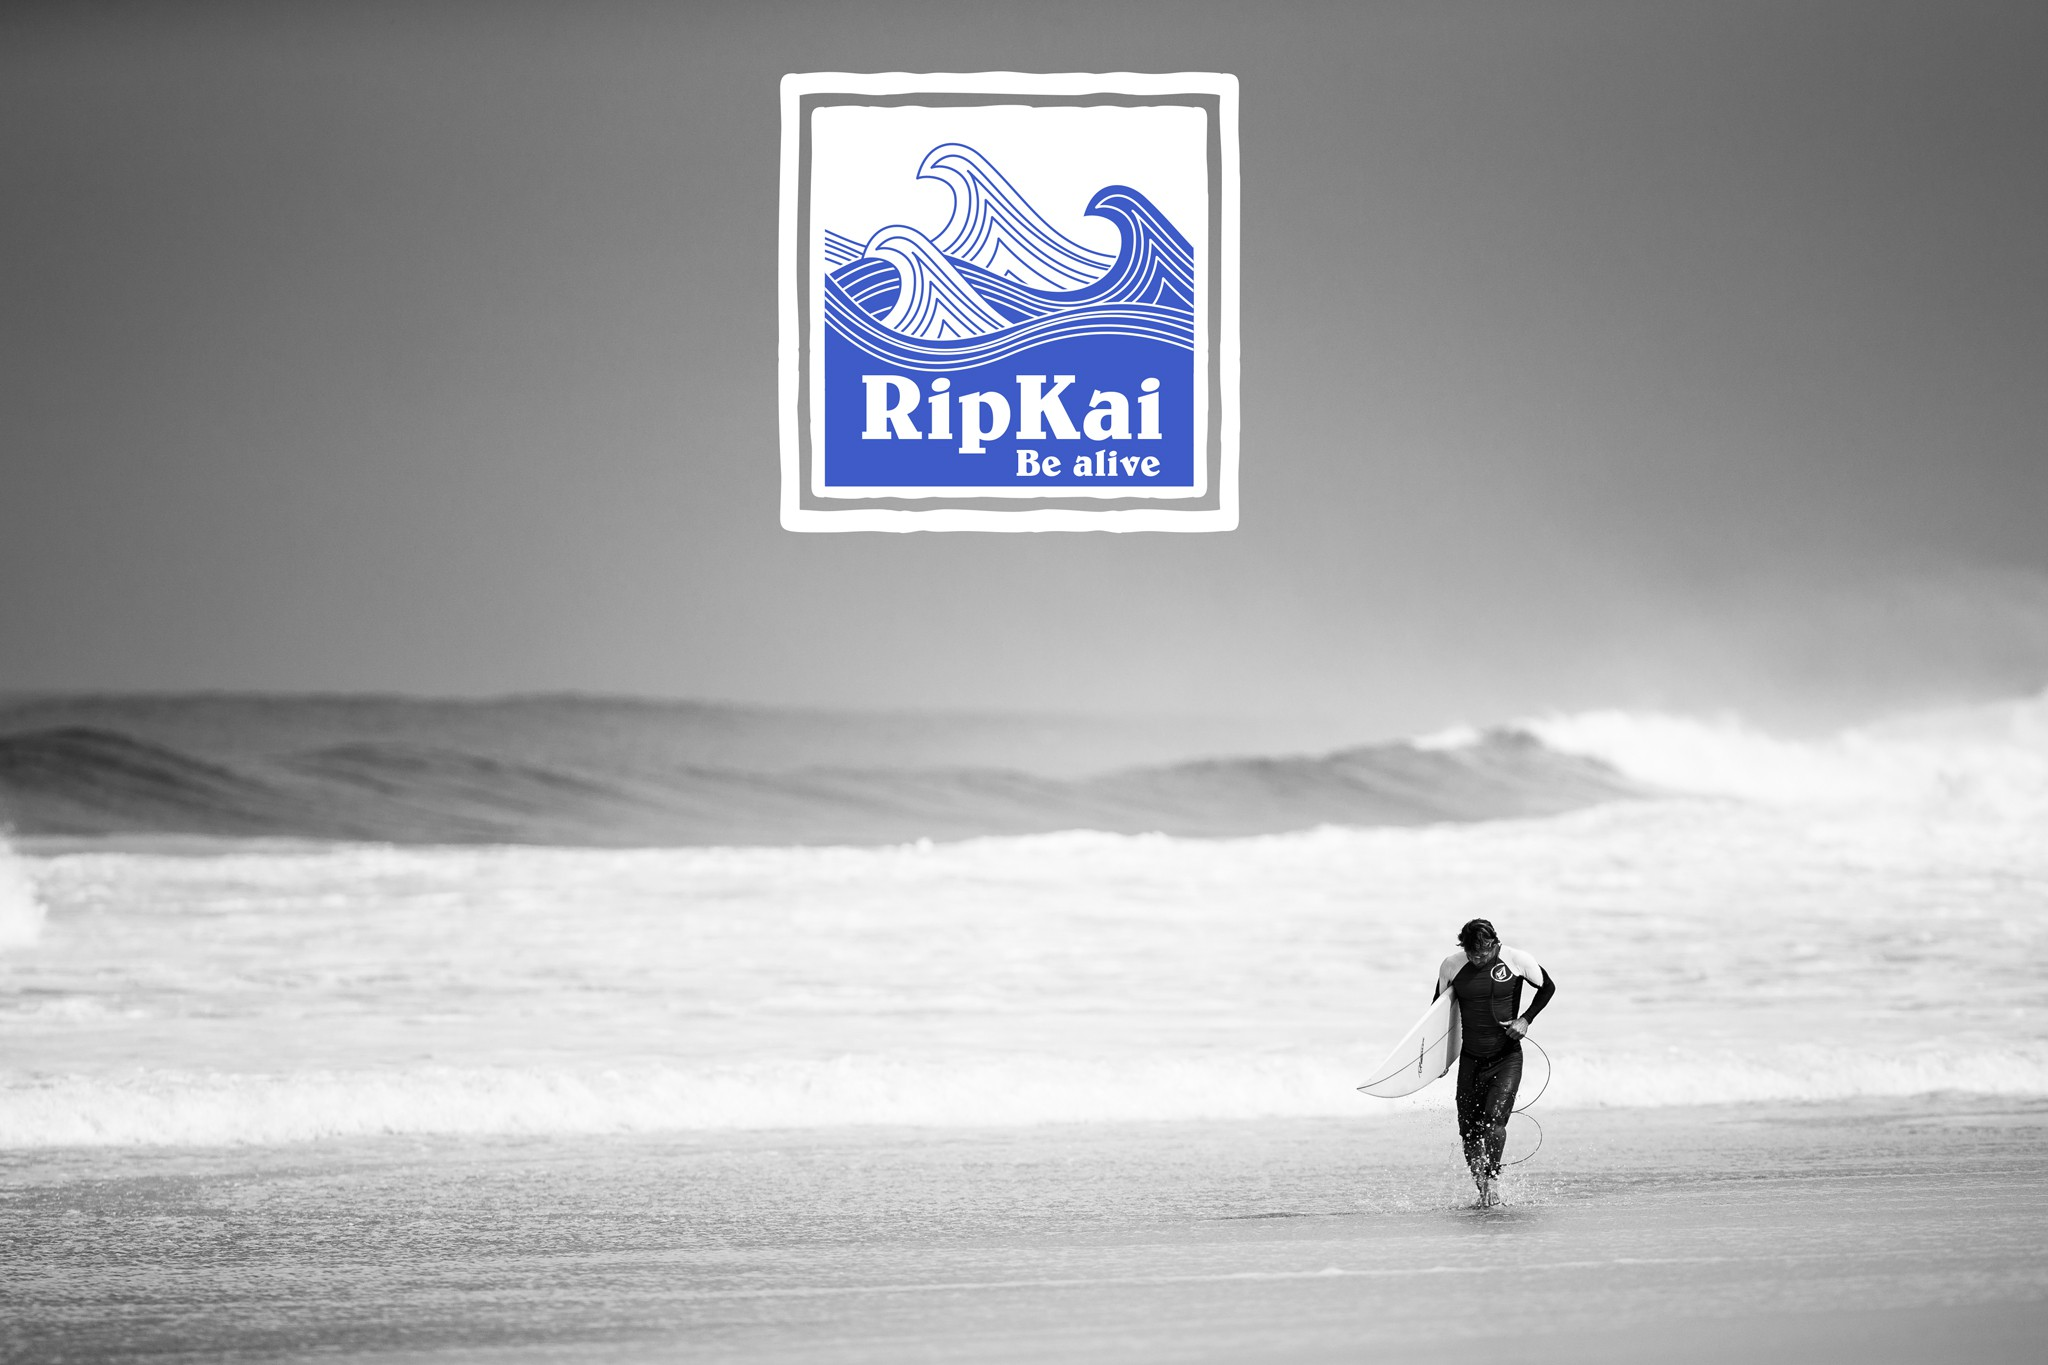 Fresh, clean, surfer-vibed logo needed for a cool rip current safety device!